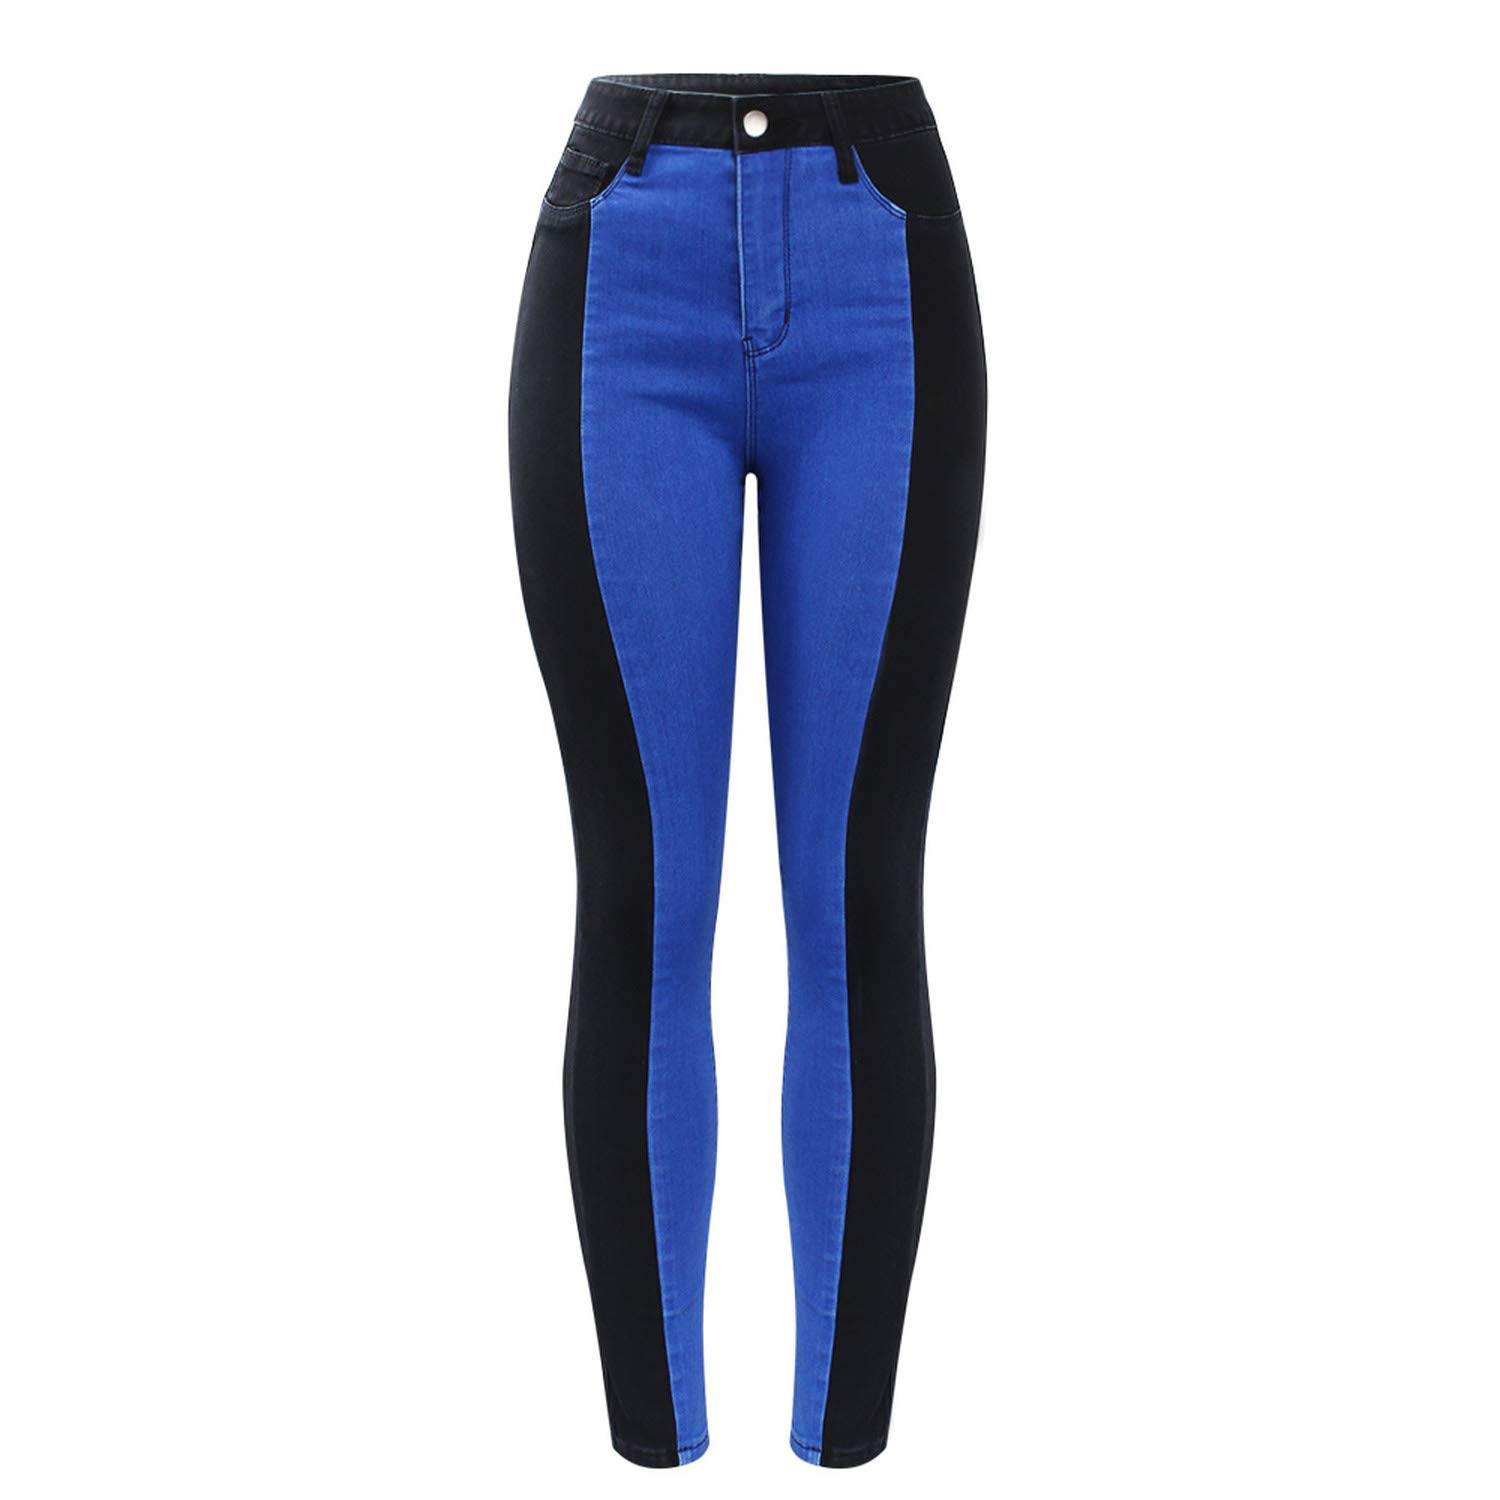 Zcaosma Plus Size High Waist Patched Jeans Woman Black /& Blue Stretchy Denim Skinny Pants Trousers for Women Jeans